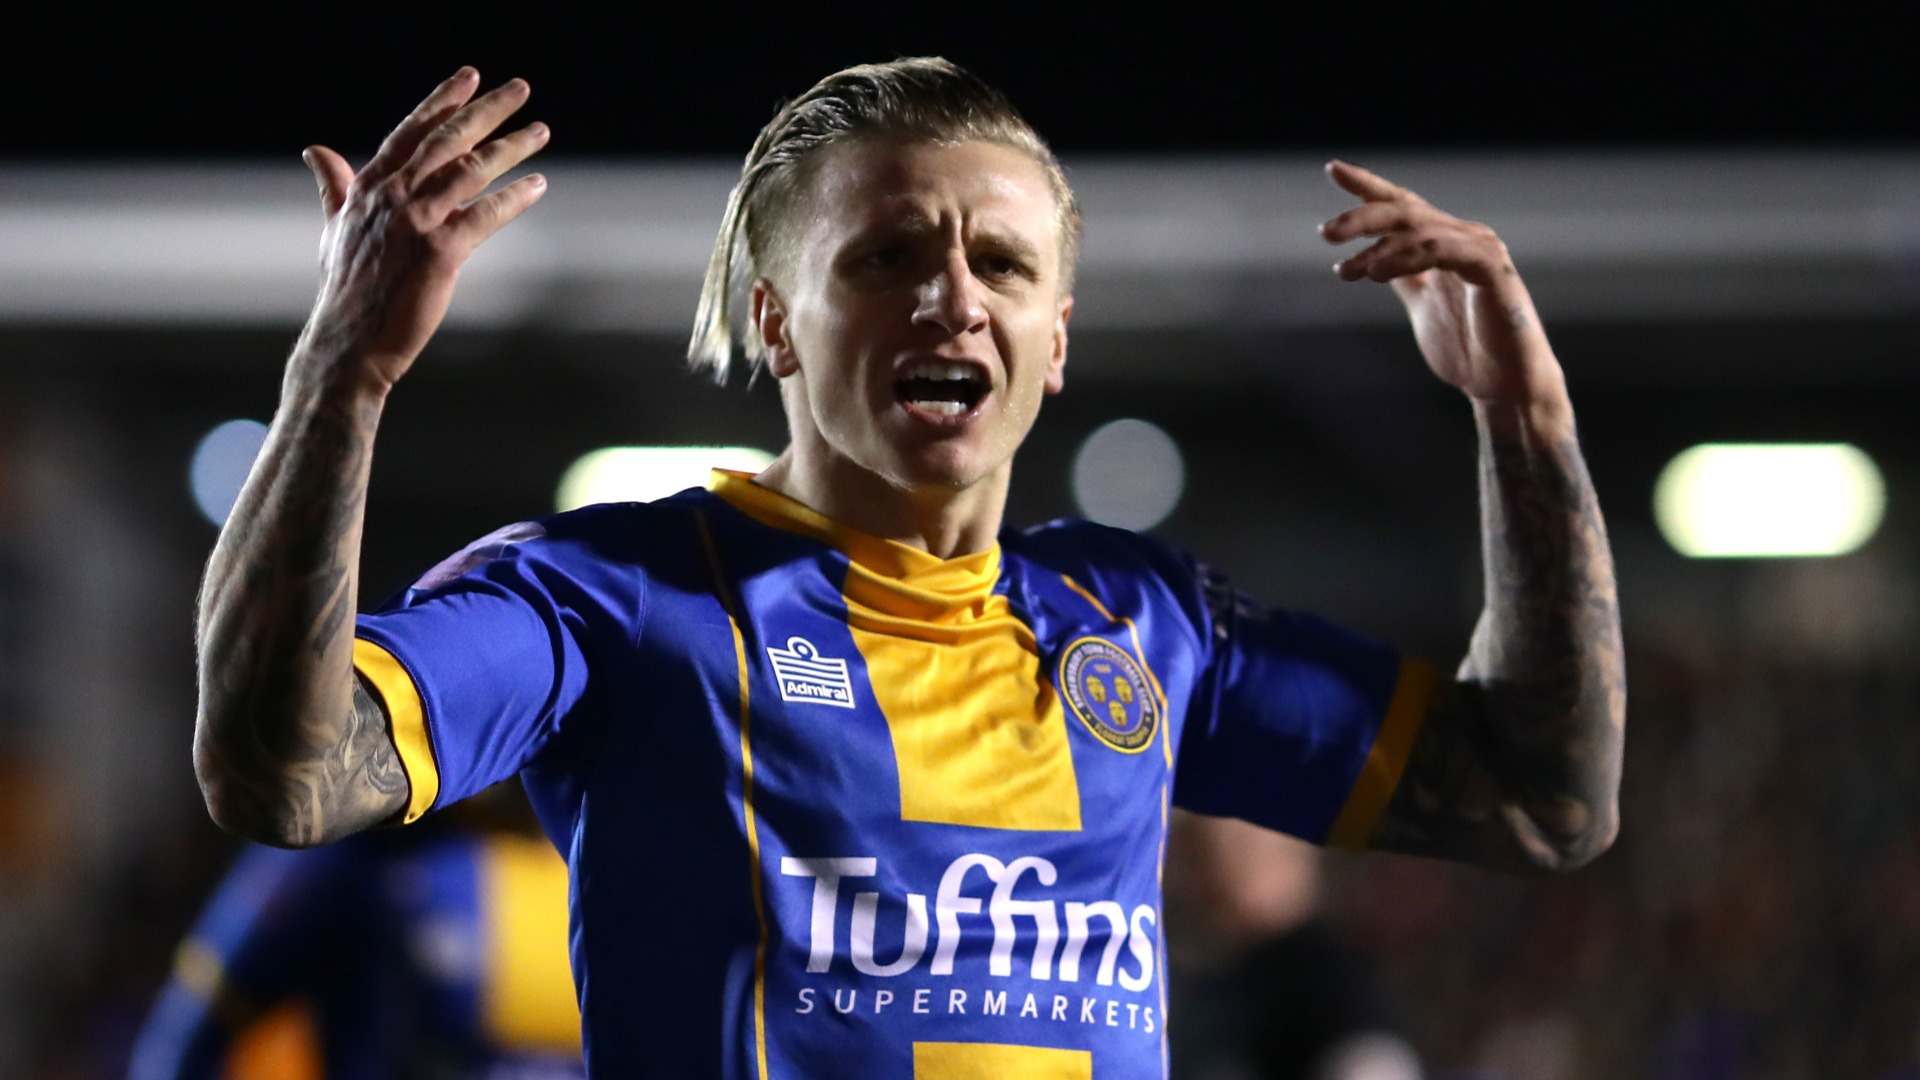 Shrewsbury Town 2-2 Liverpool: Cummings double earns surprise draw